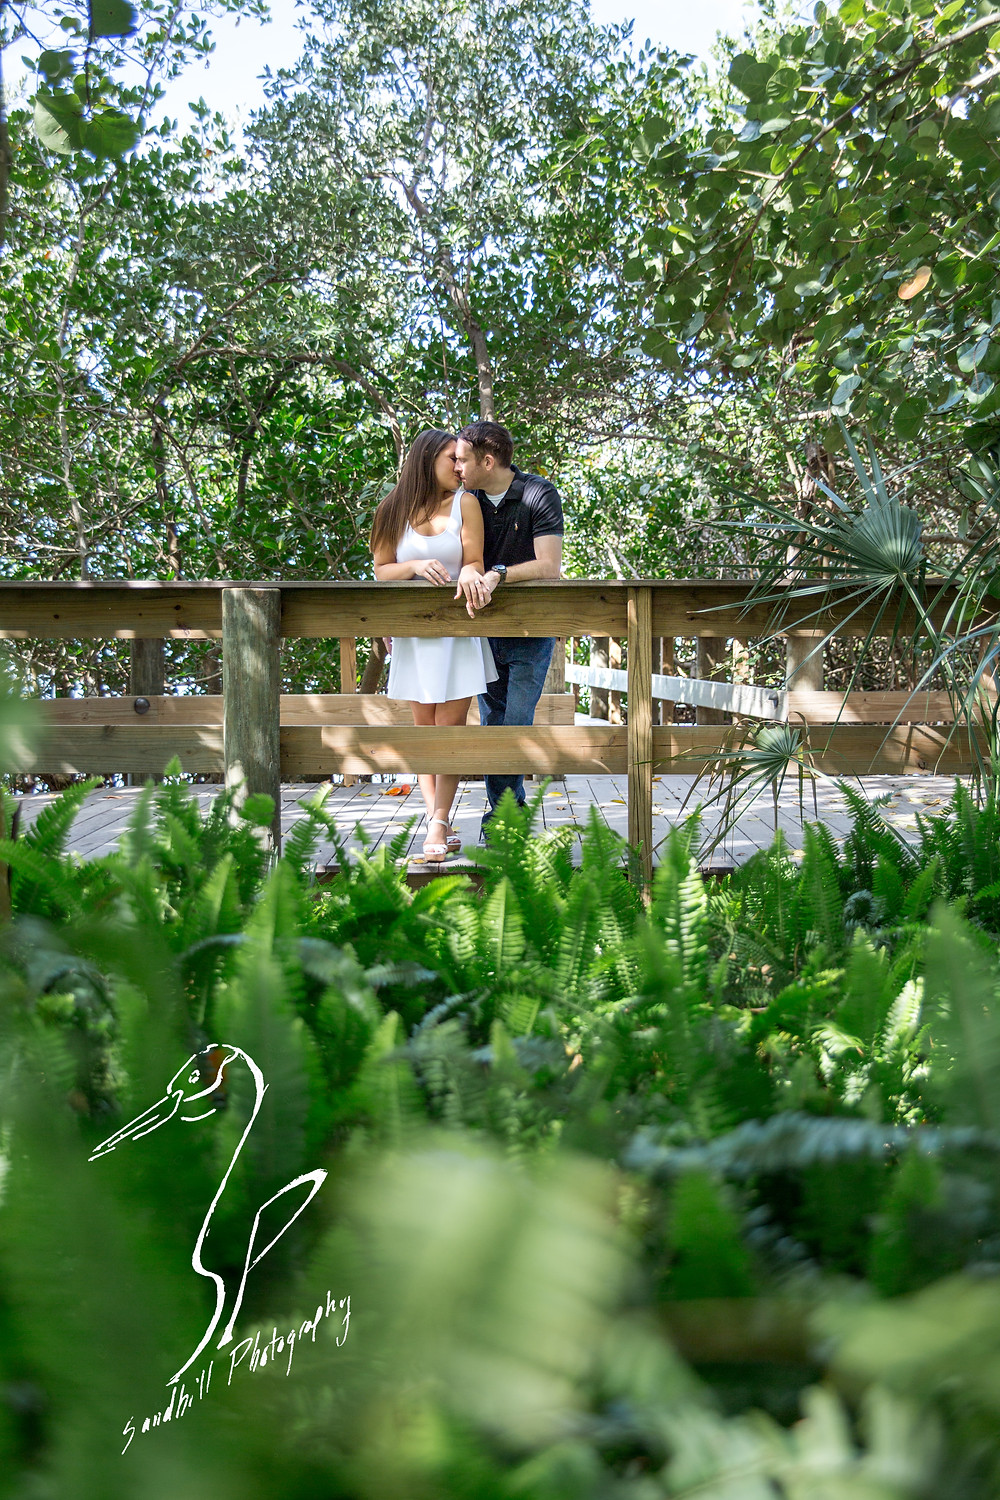 Engagement Photography Selby Gardens Boardwalk ferns Sandhill Photography